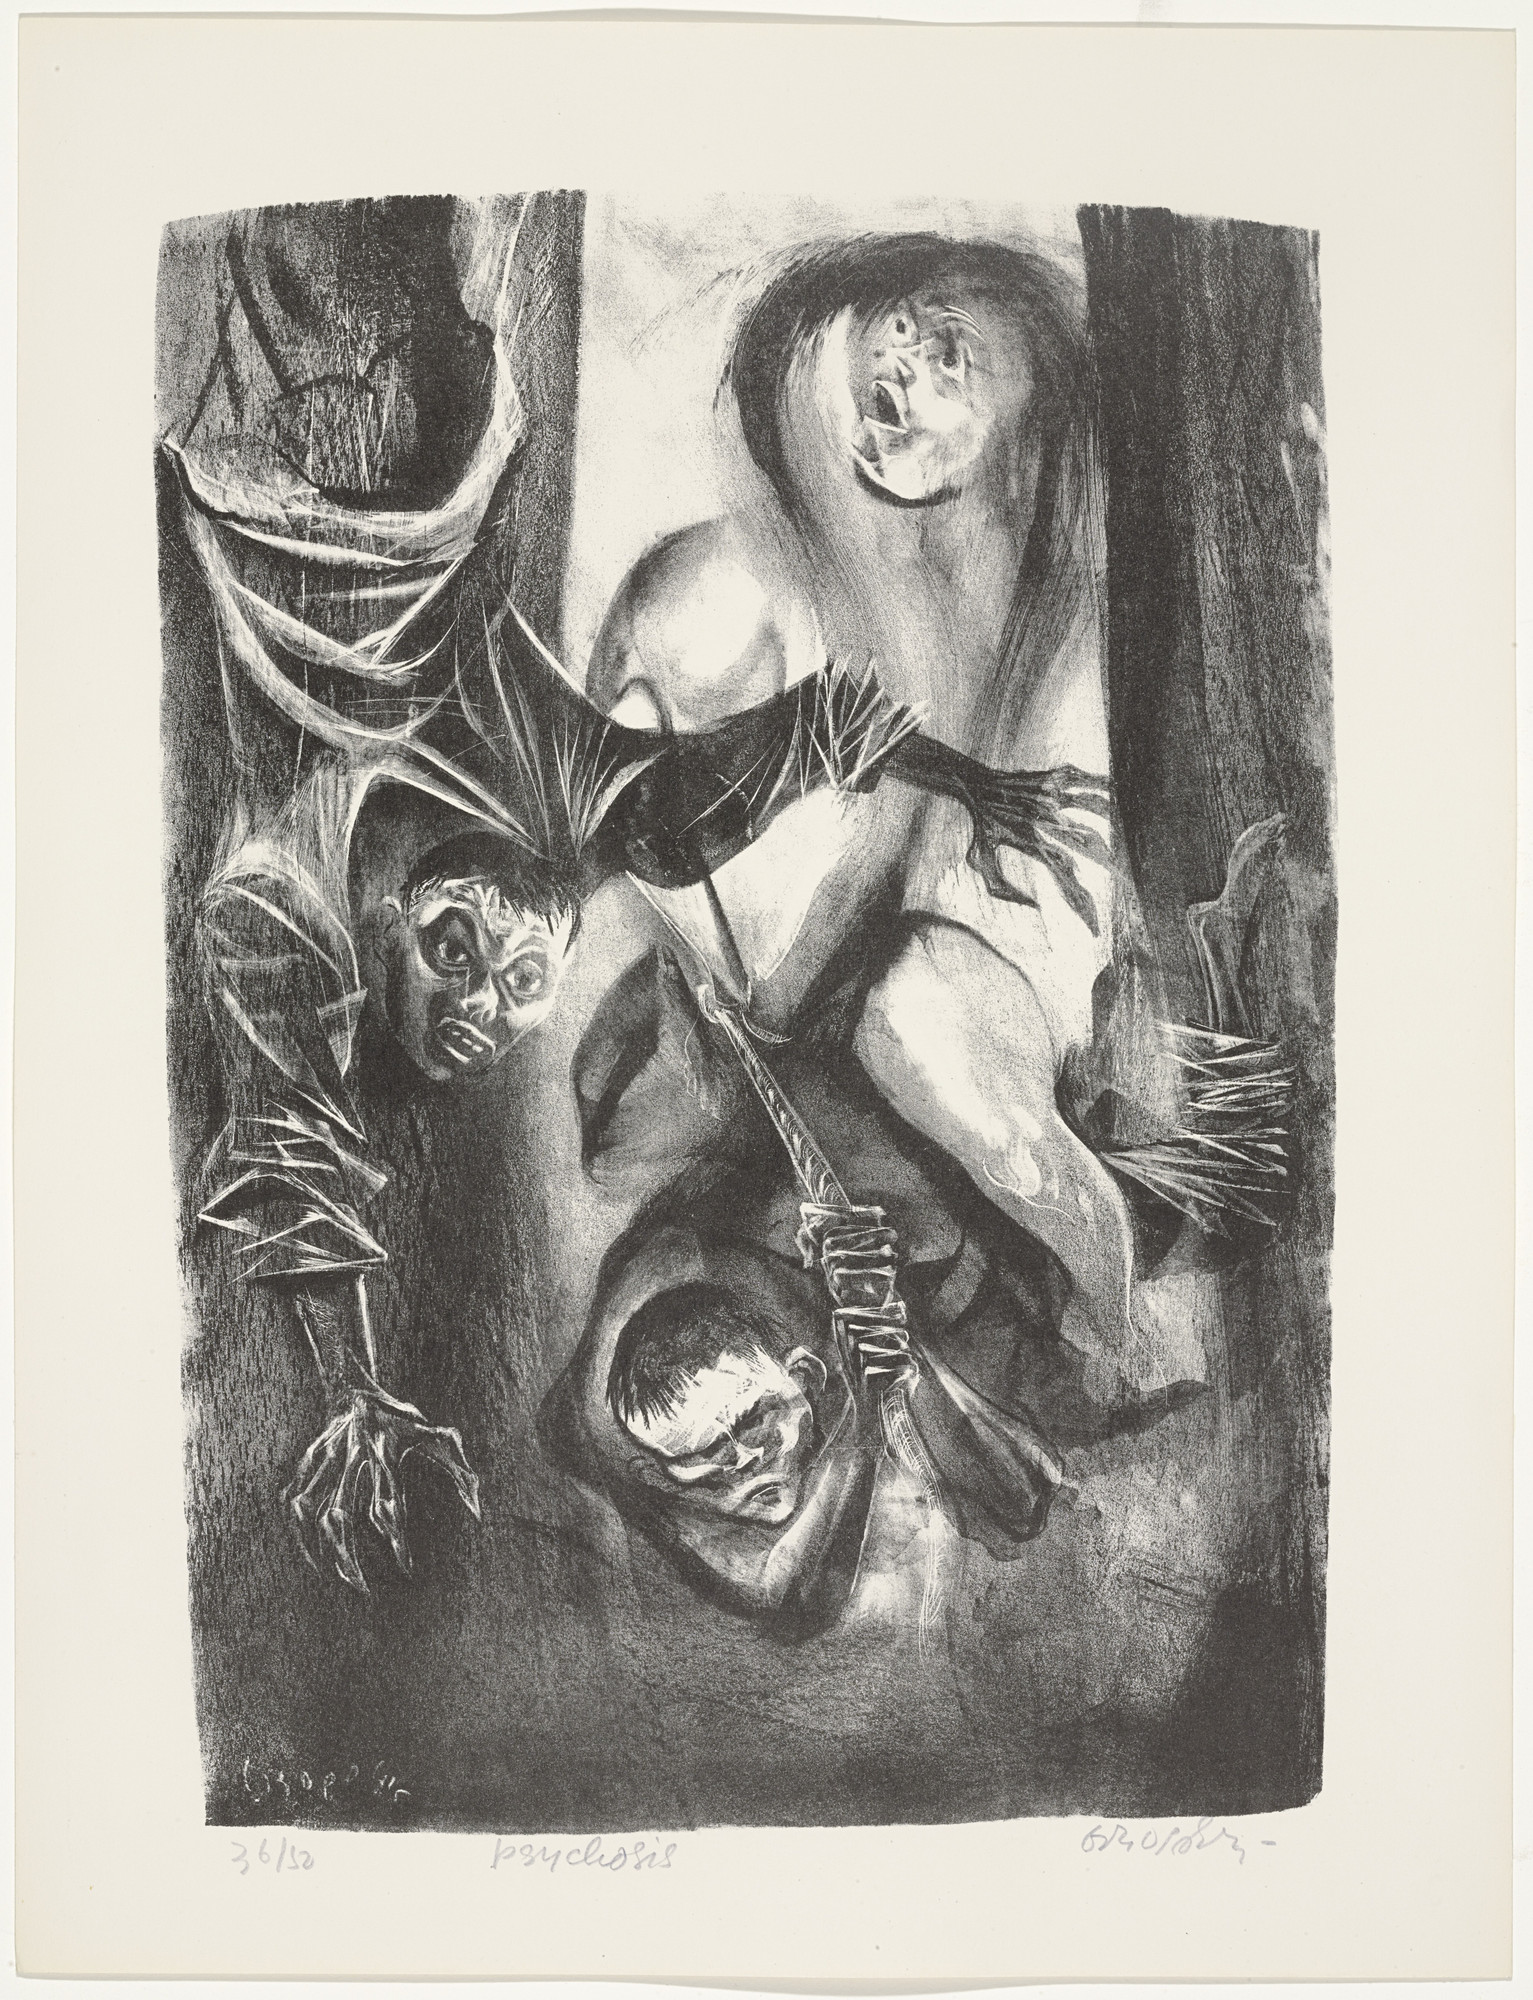 William Gropper. Psychosis from Capriccios. 1953–57